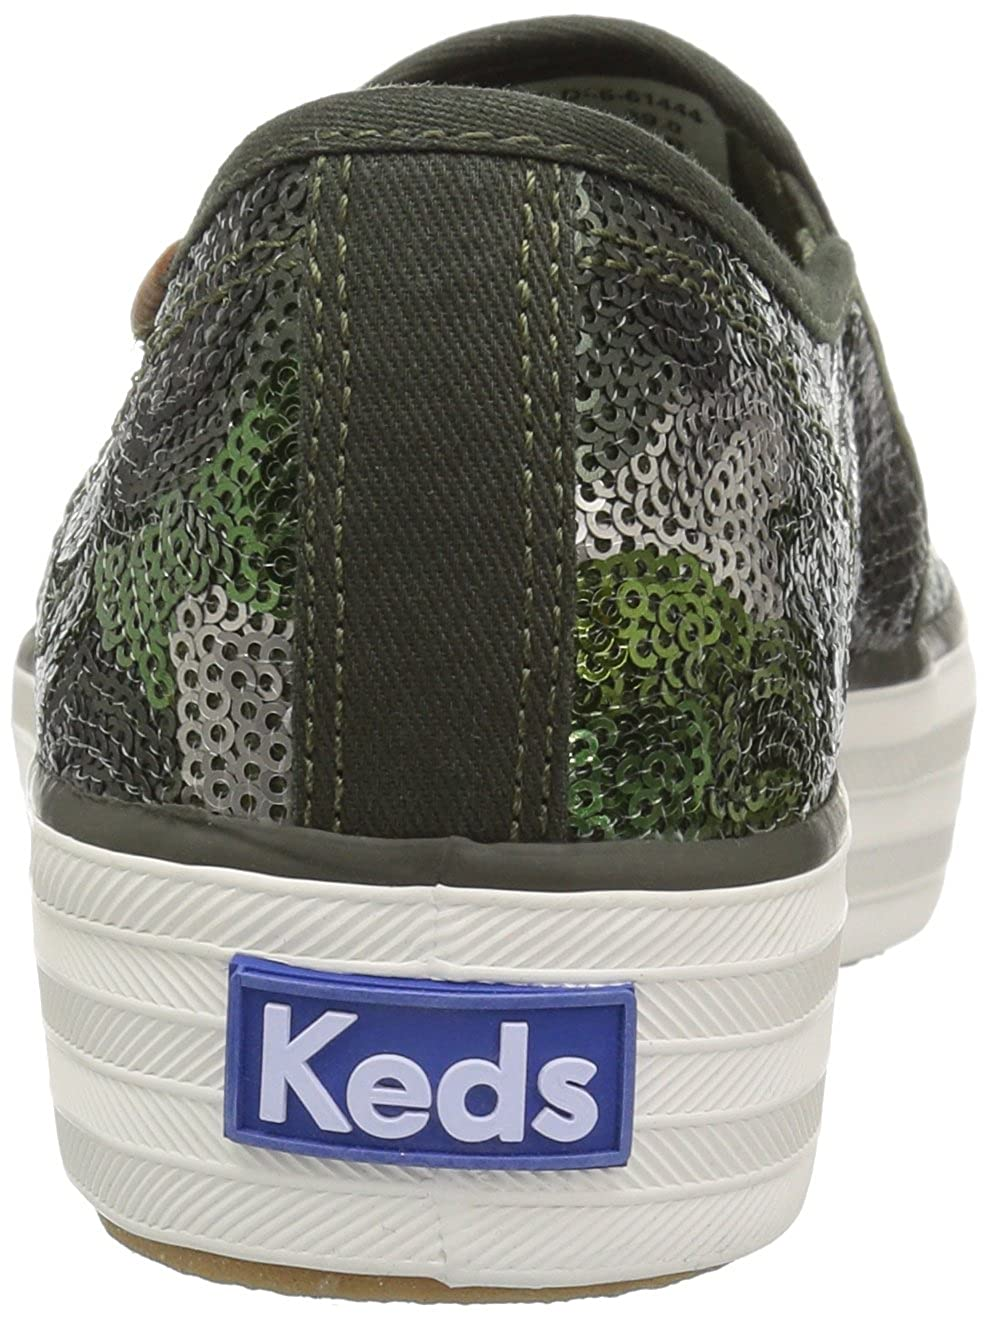 44ca9cf5501a7 Keds Women's Triple Decker Camo Sequin Fashion Sneaker: Buy Online at Low  Prices in India - Amazon.in